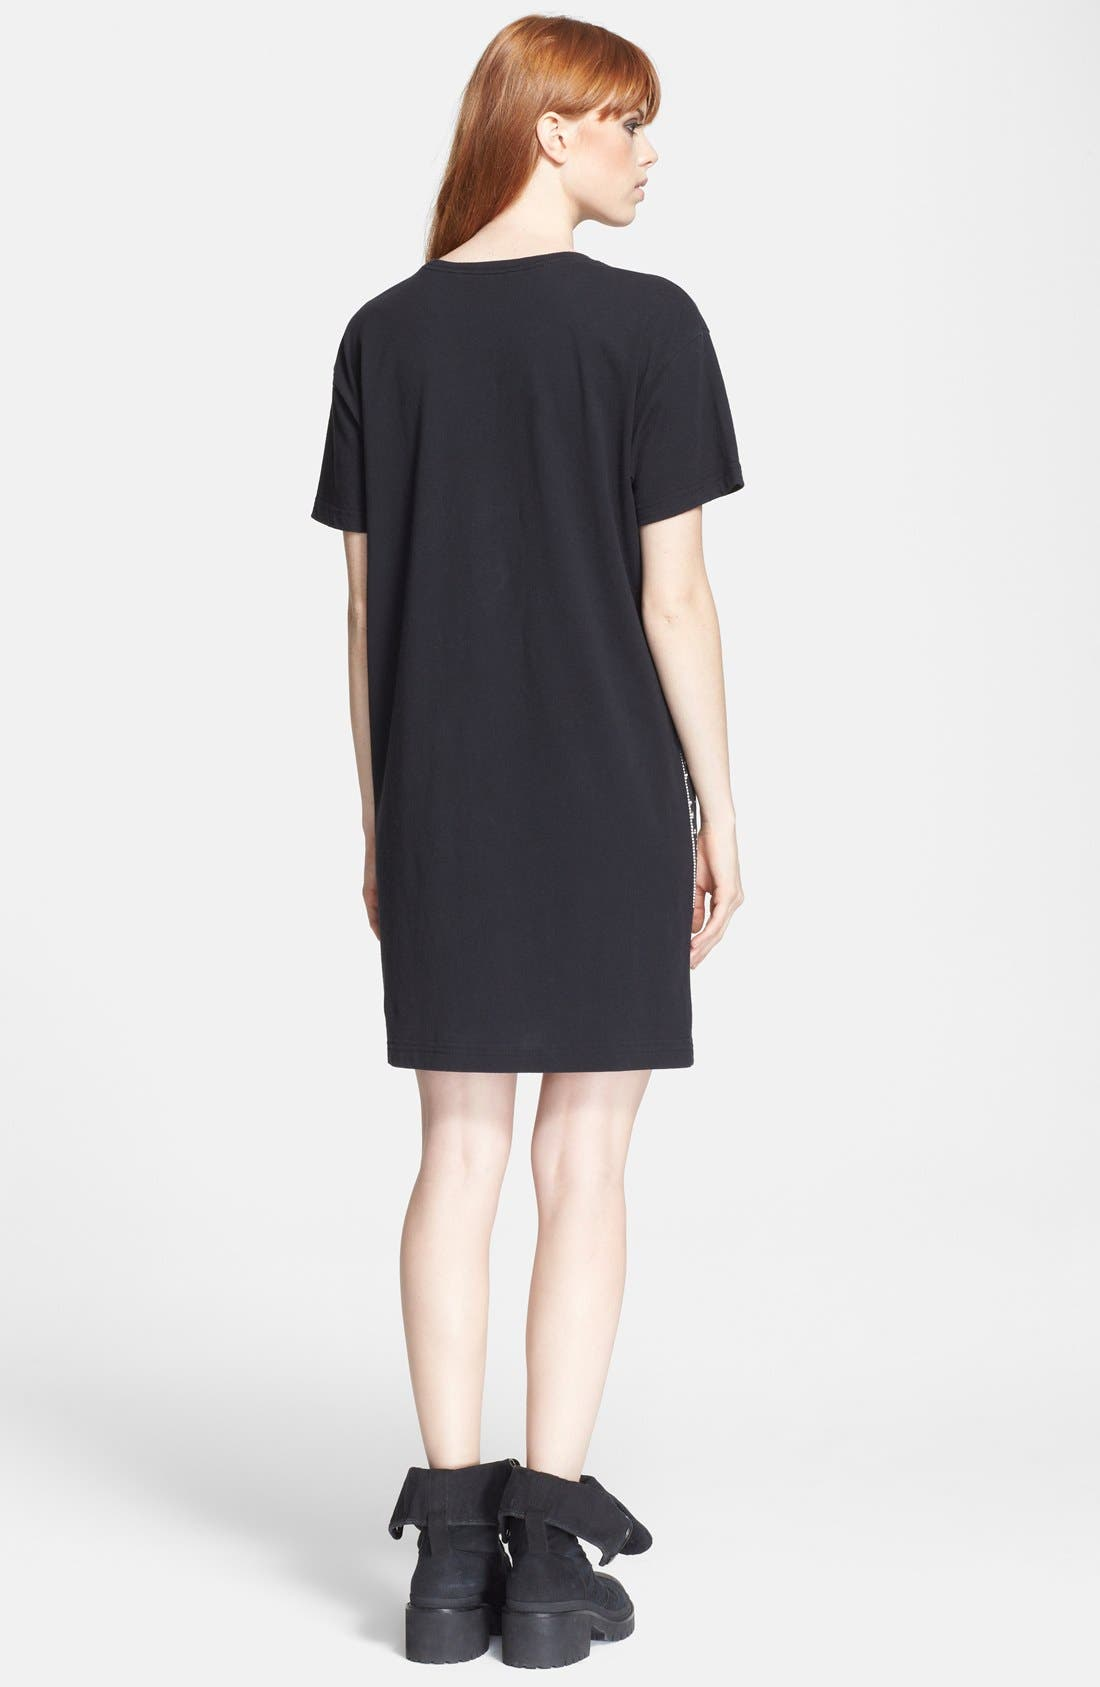 'New World' Graphic T-Shirt Dress,                             Alternate thumbnail 3, color,                             002